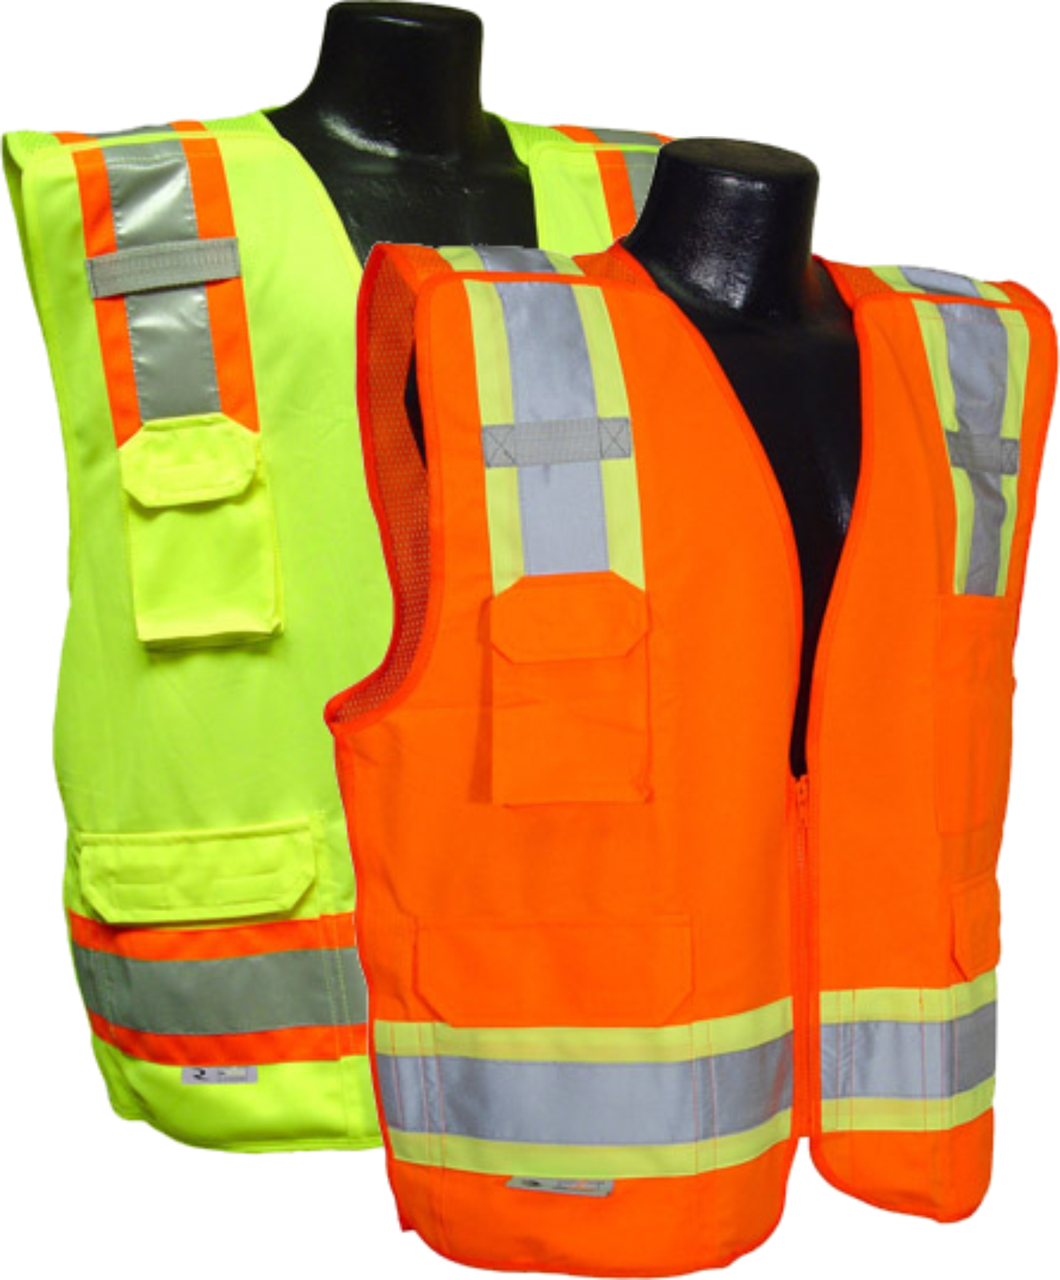 Surveyor 5 point breakaway safety vest | Type R / Class 2 | ANSI/ISEA 107-2015